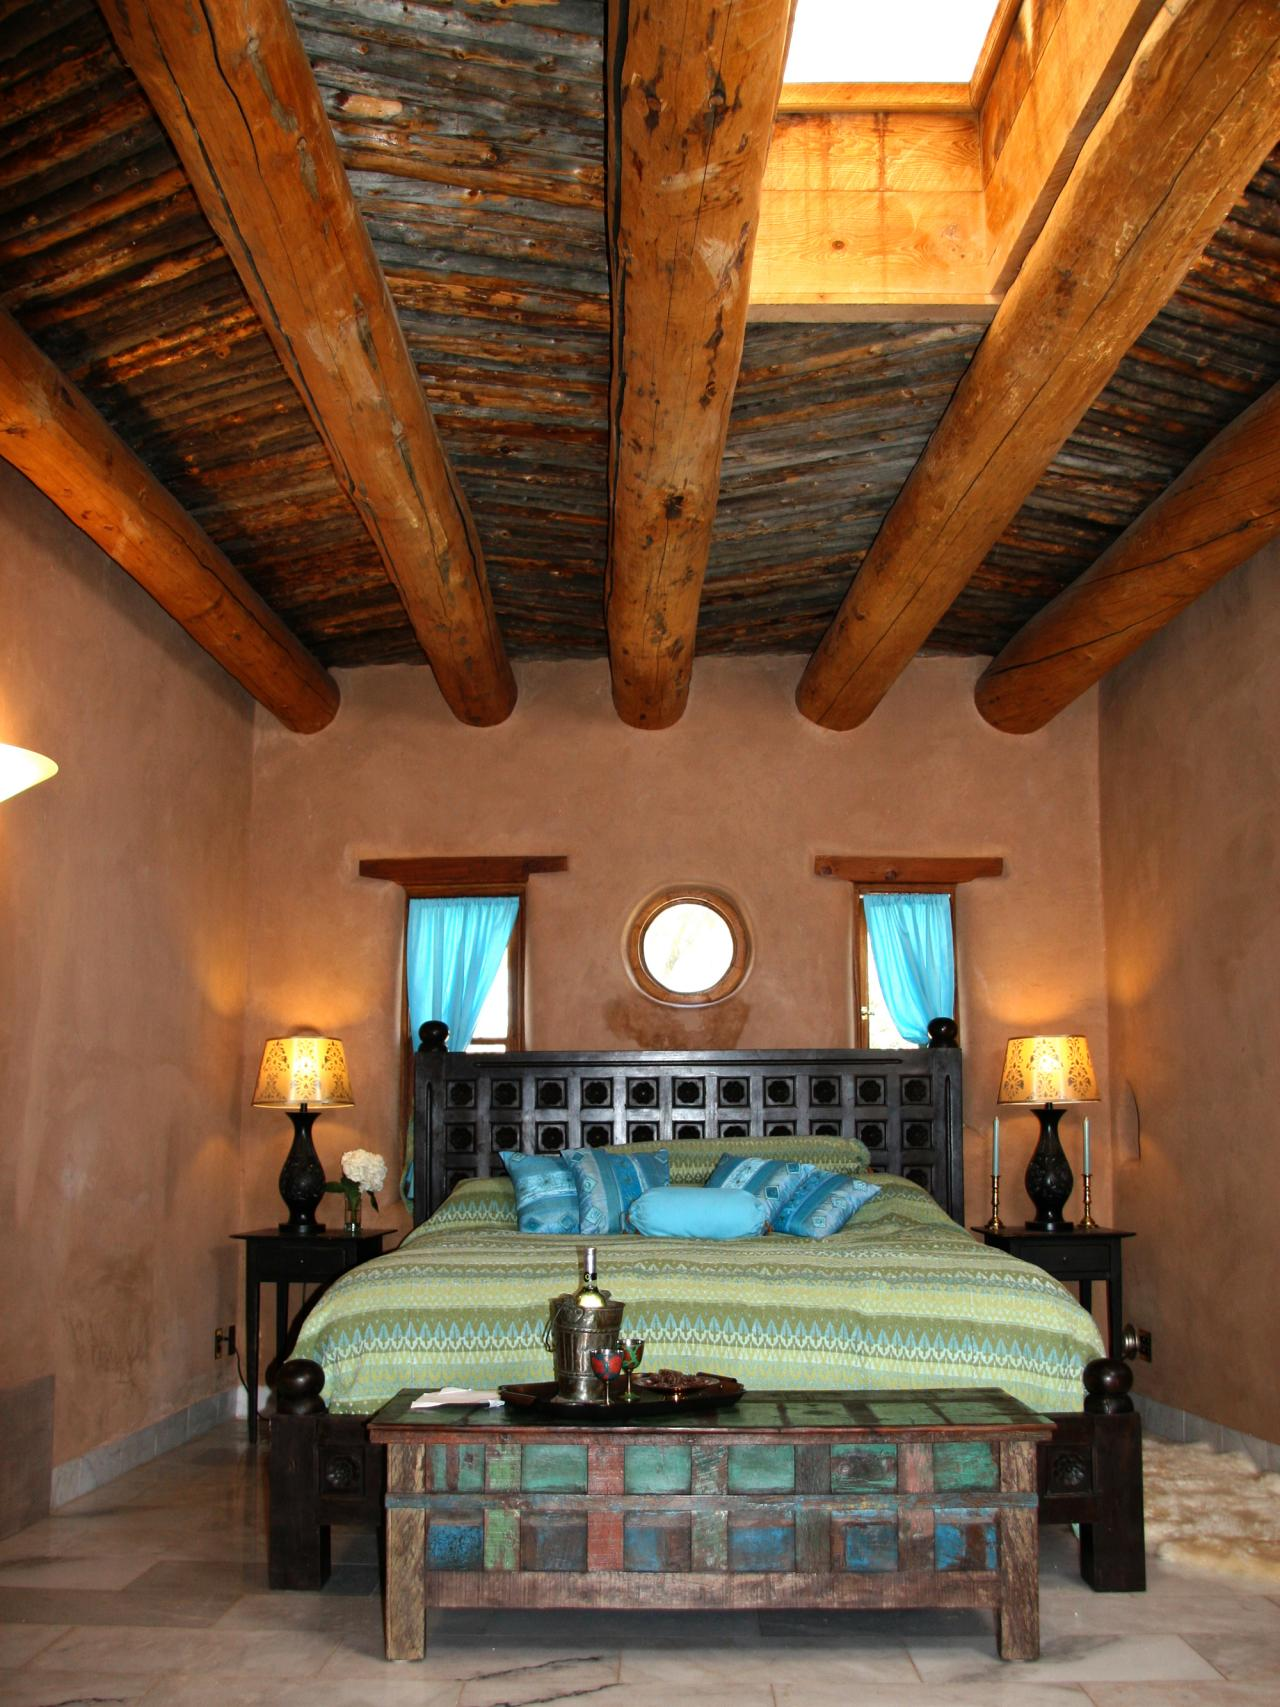 Uncategorized Exposed Wooden Beams exposed ceiling beams ideas homesfeed bed pillows lamps beams